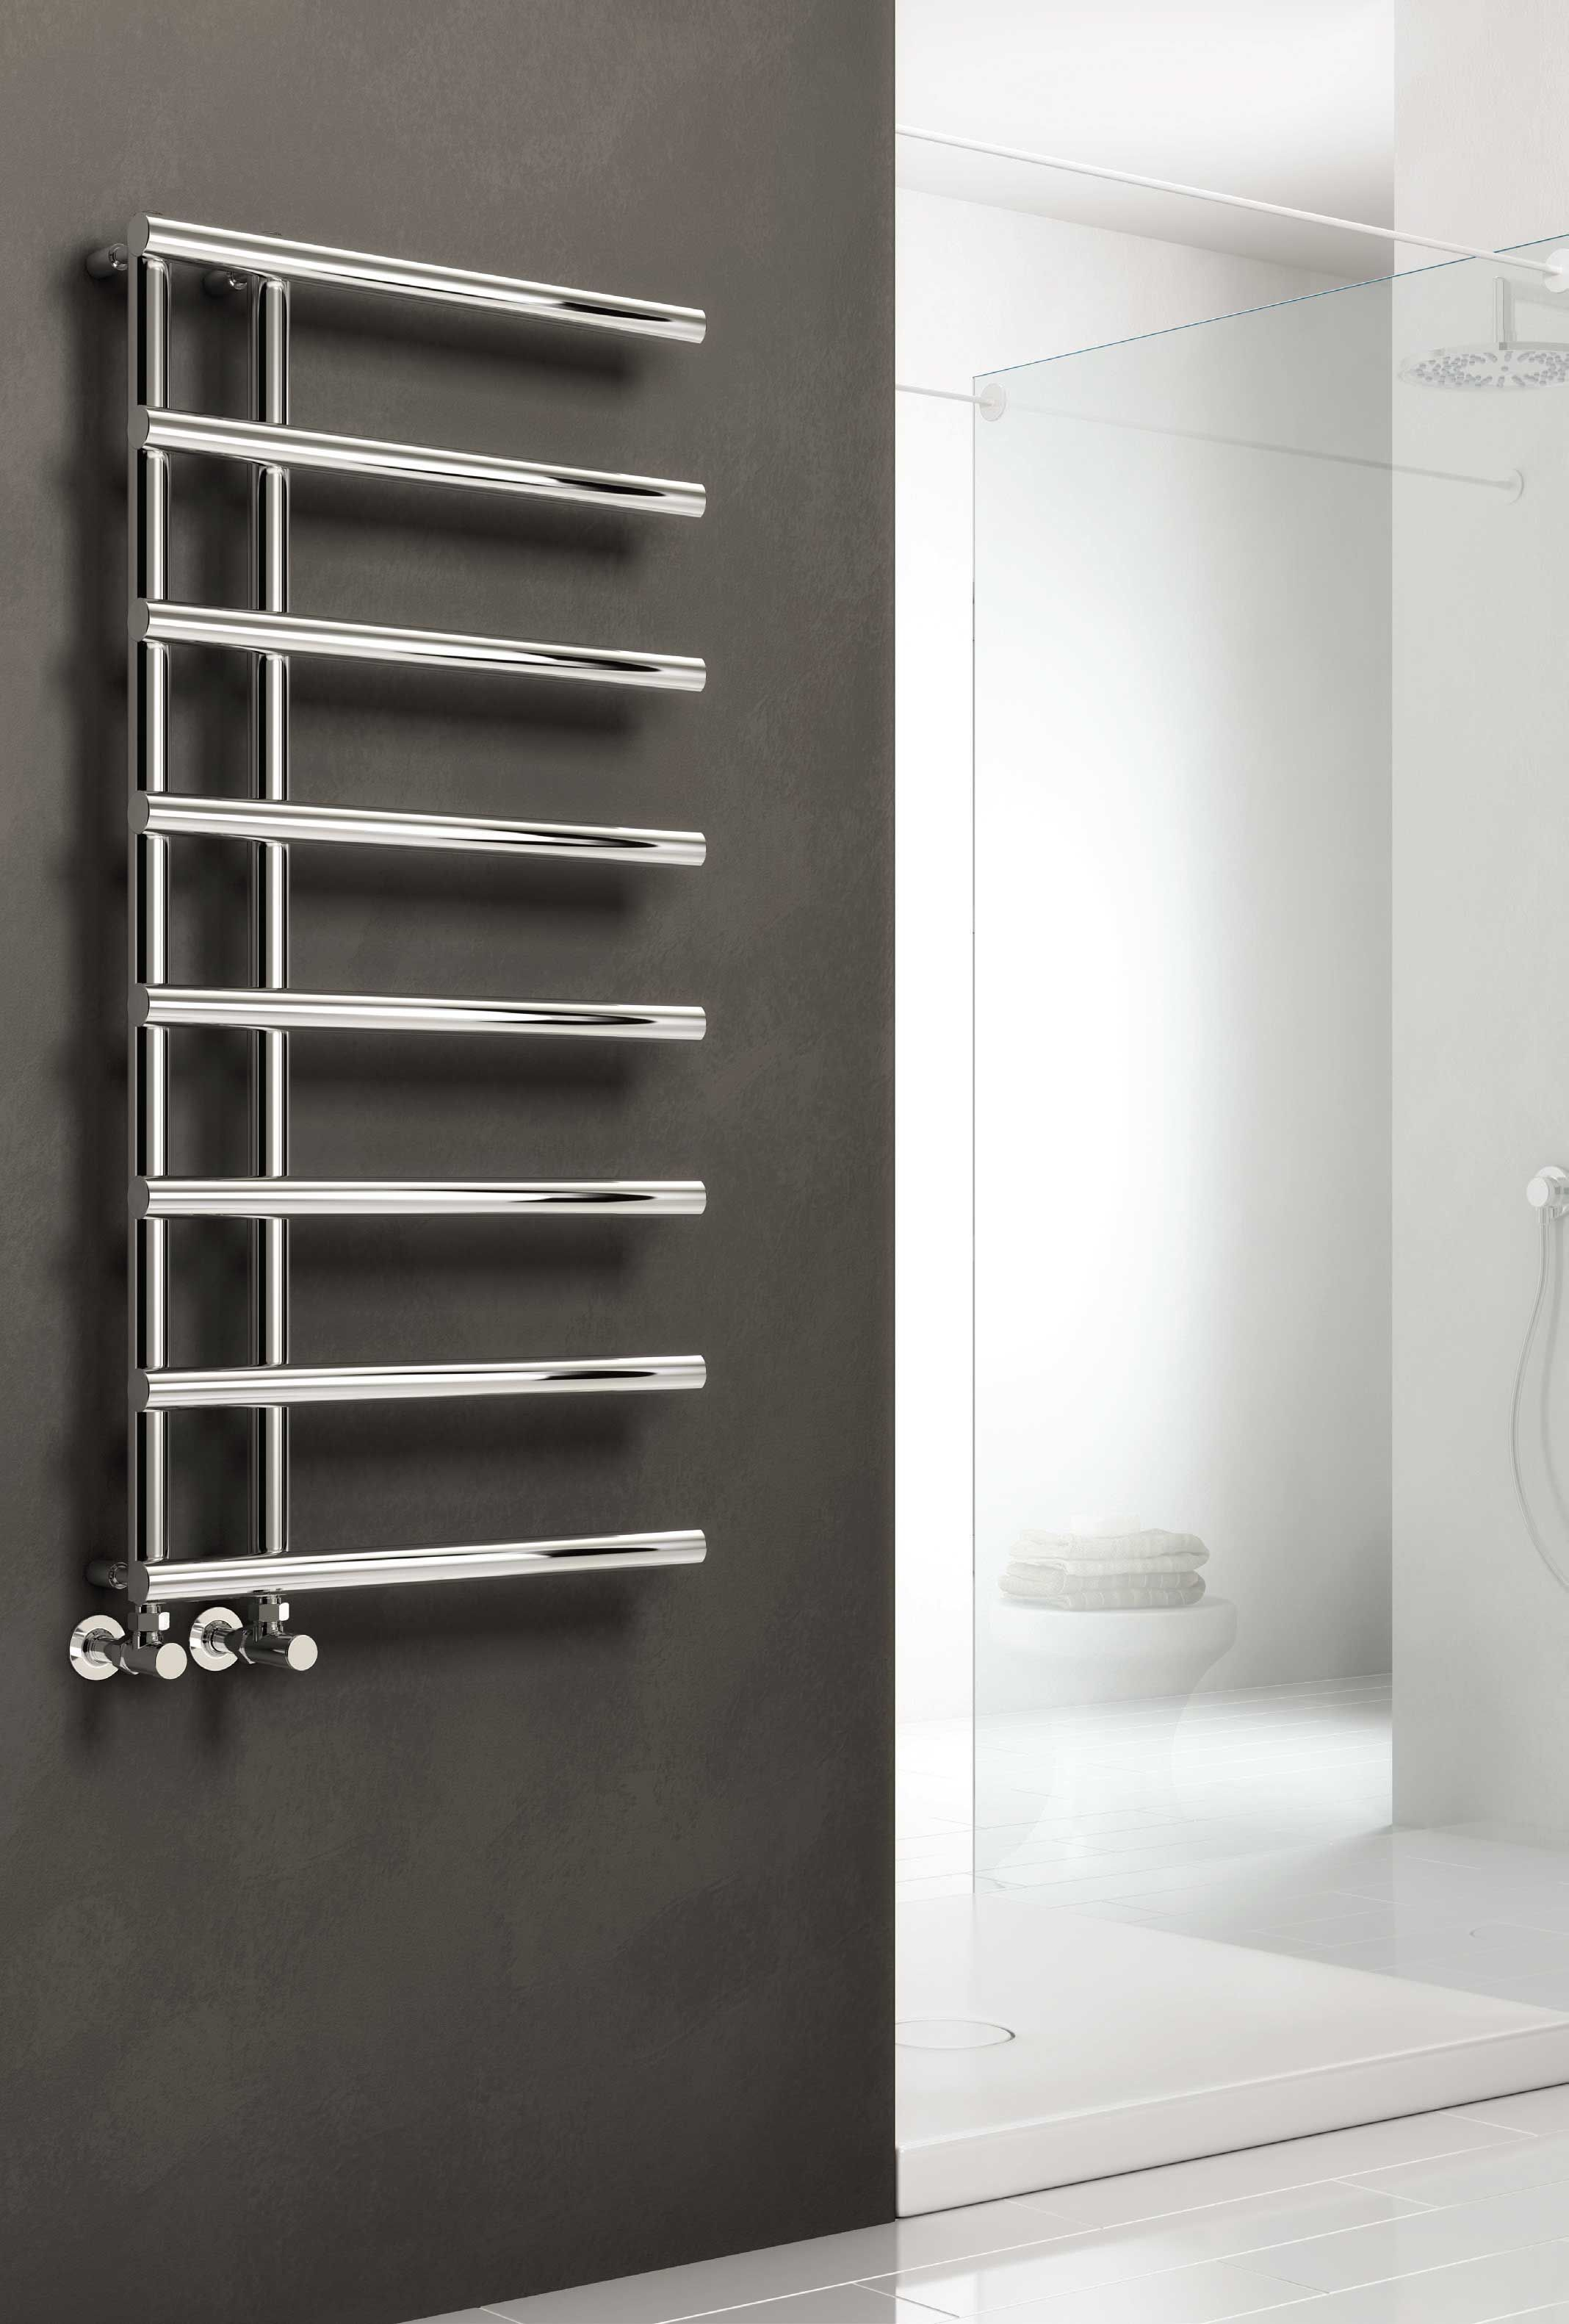 the reina matera designer heated towel rail the perfect addition to any bathroom or kitchen - Designer Heated Towel Rails For Bathrooms